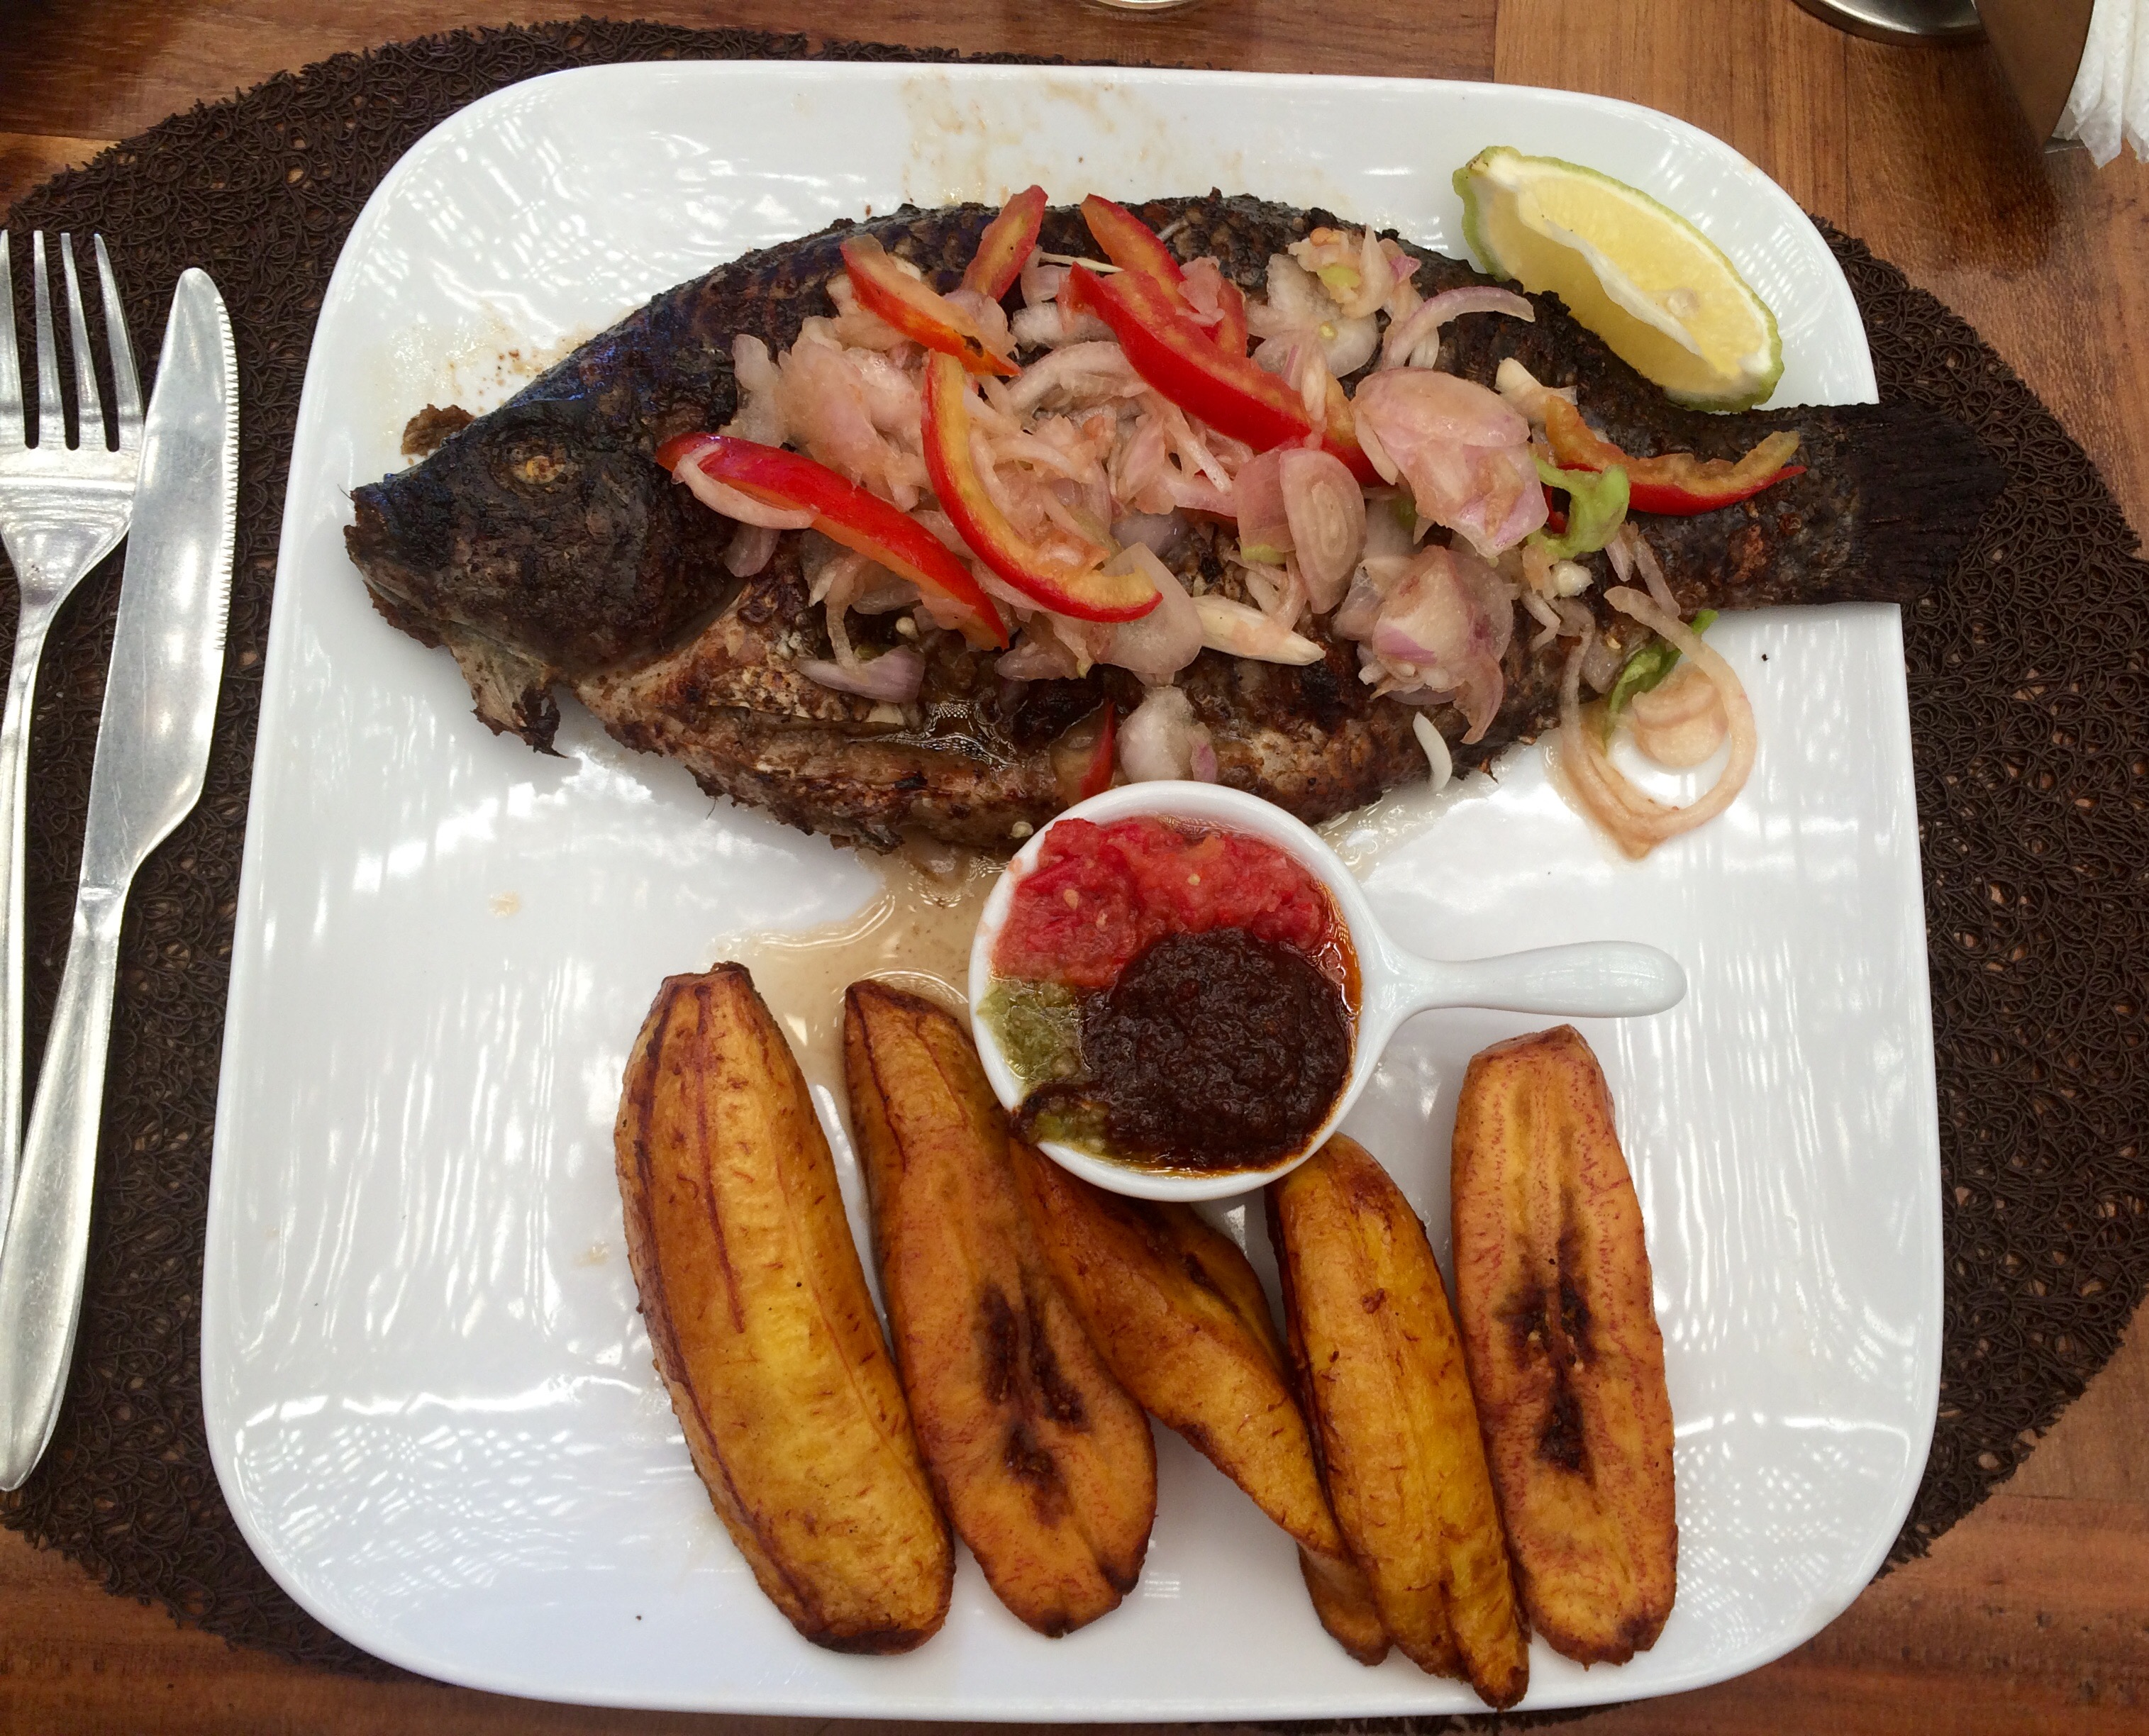 Grilled talapia & plantains | Photo by Wilson Carletti (All Rights Reserved)